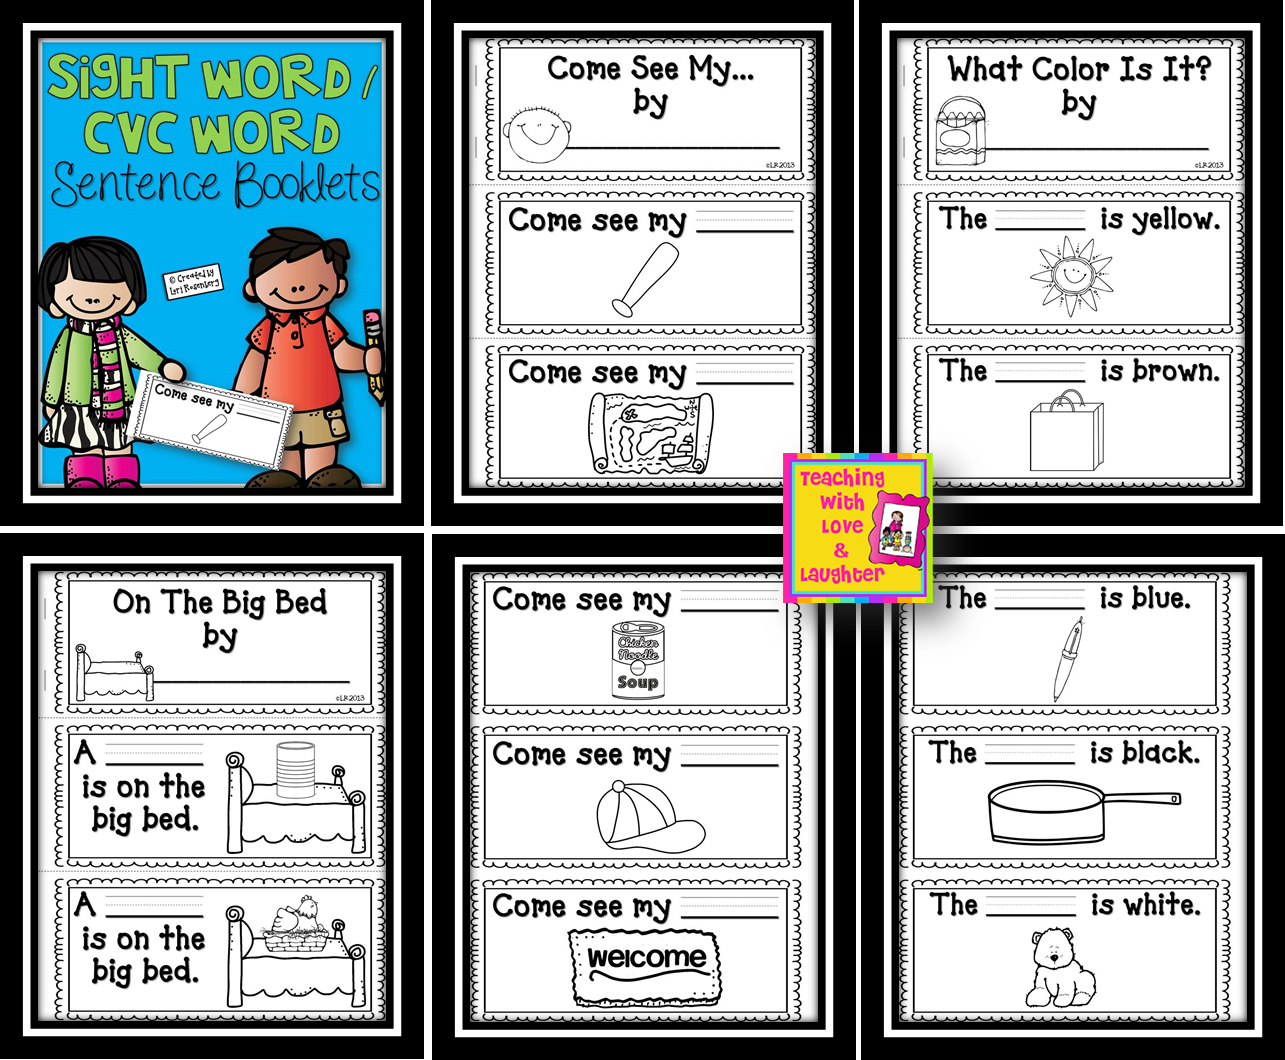 Teaching With Love And Laughter Sight Word Cvc Word